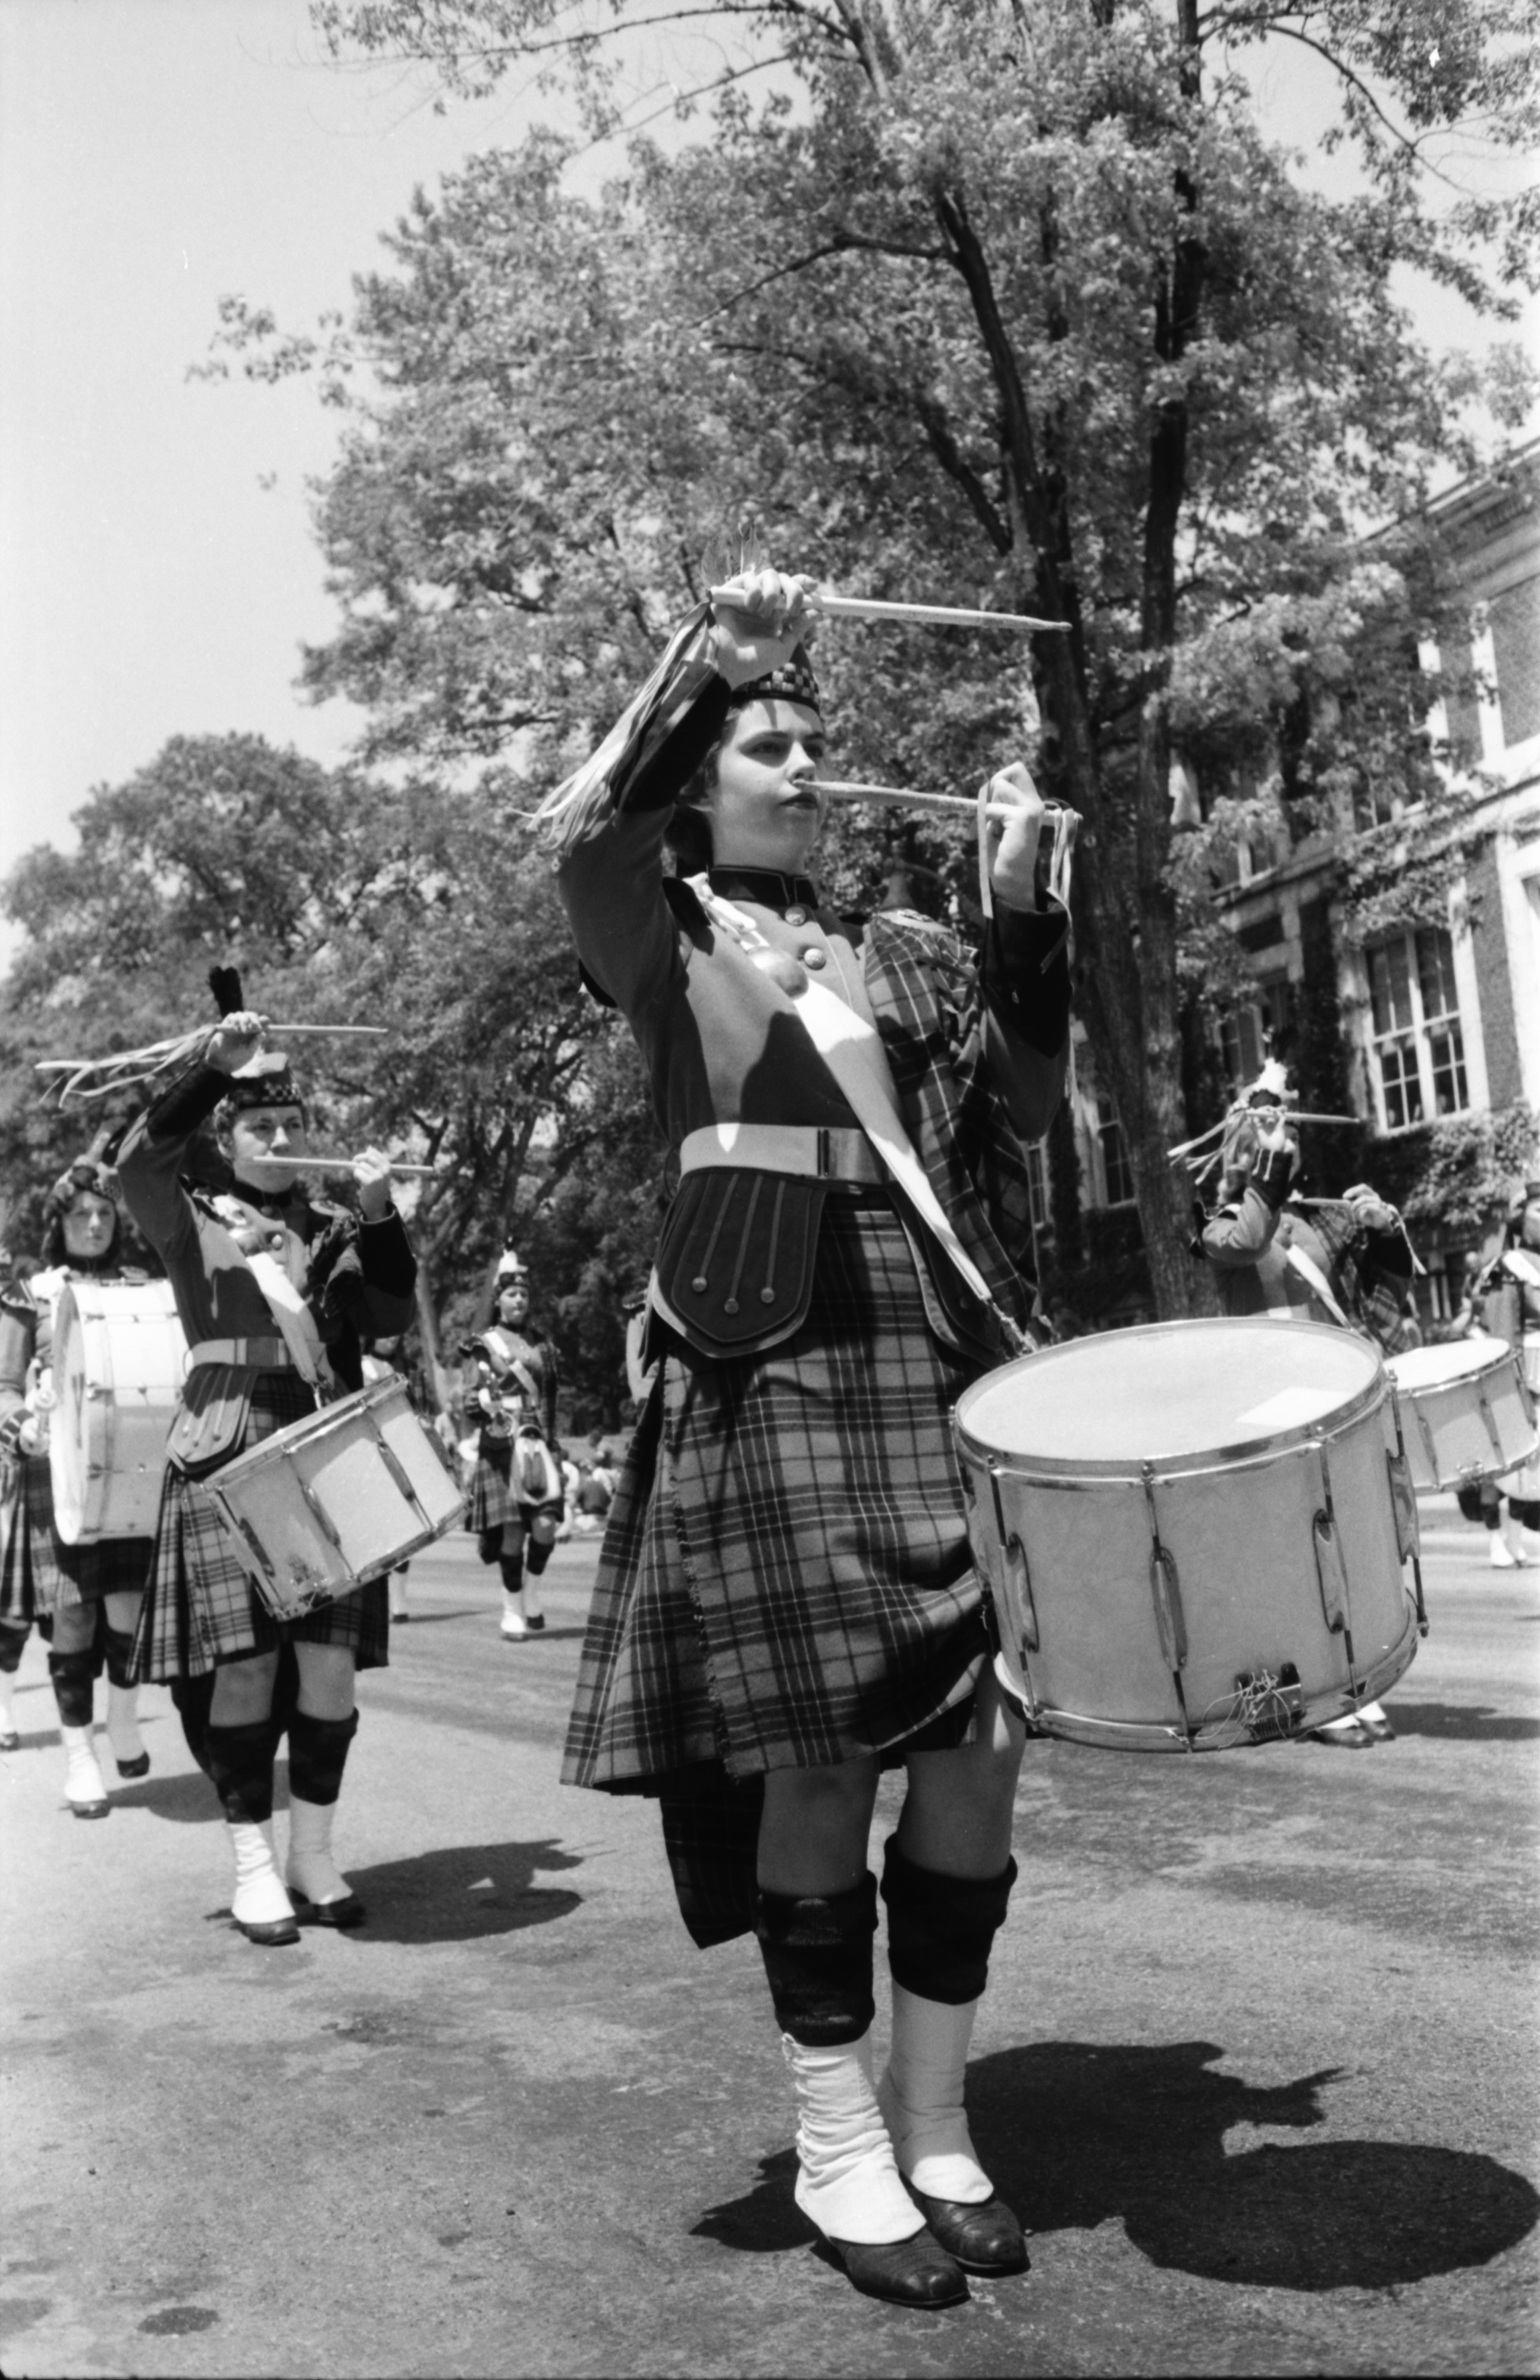 Ypsilanti High School's Girls Drum & Bugle Corps March In The Ypsilanti Fourth Of July Parade, July 1959 image